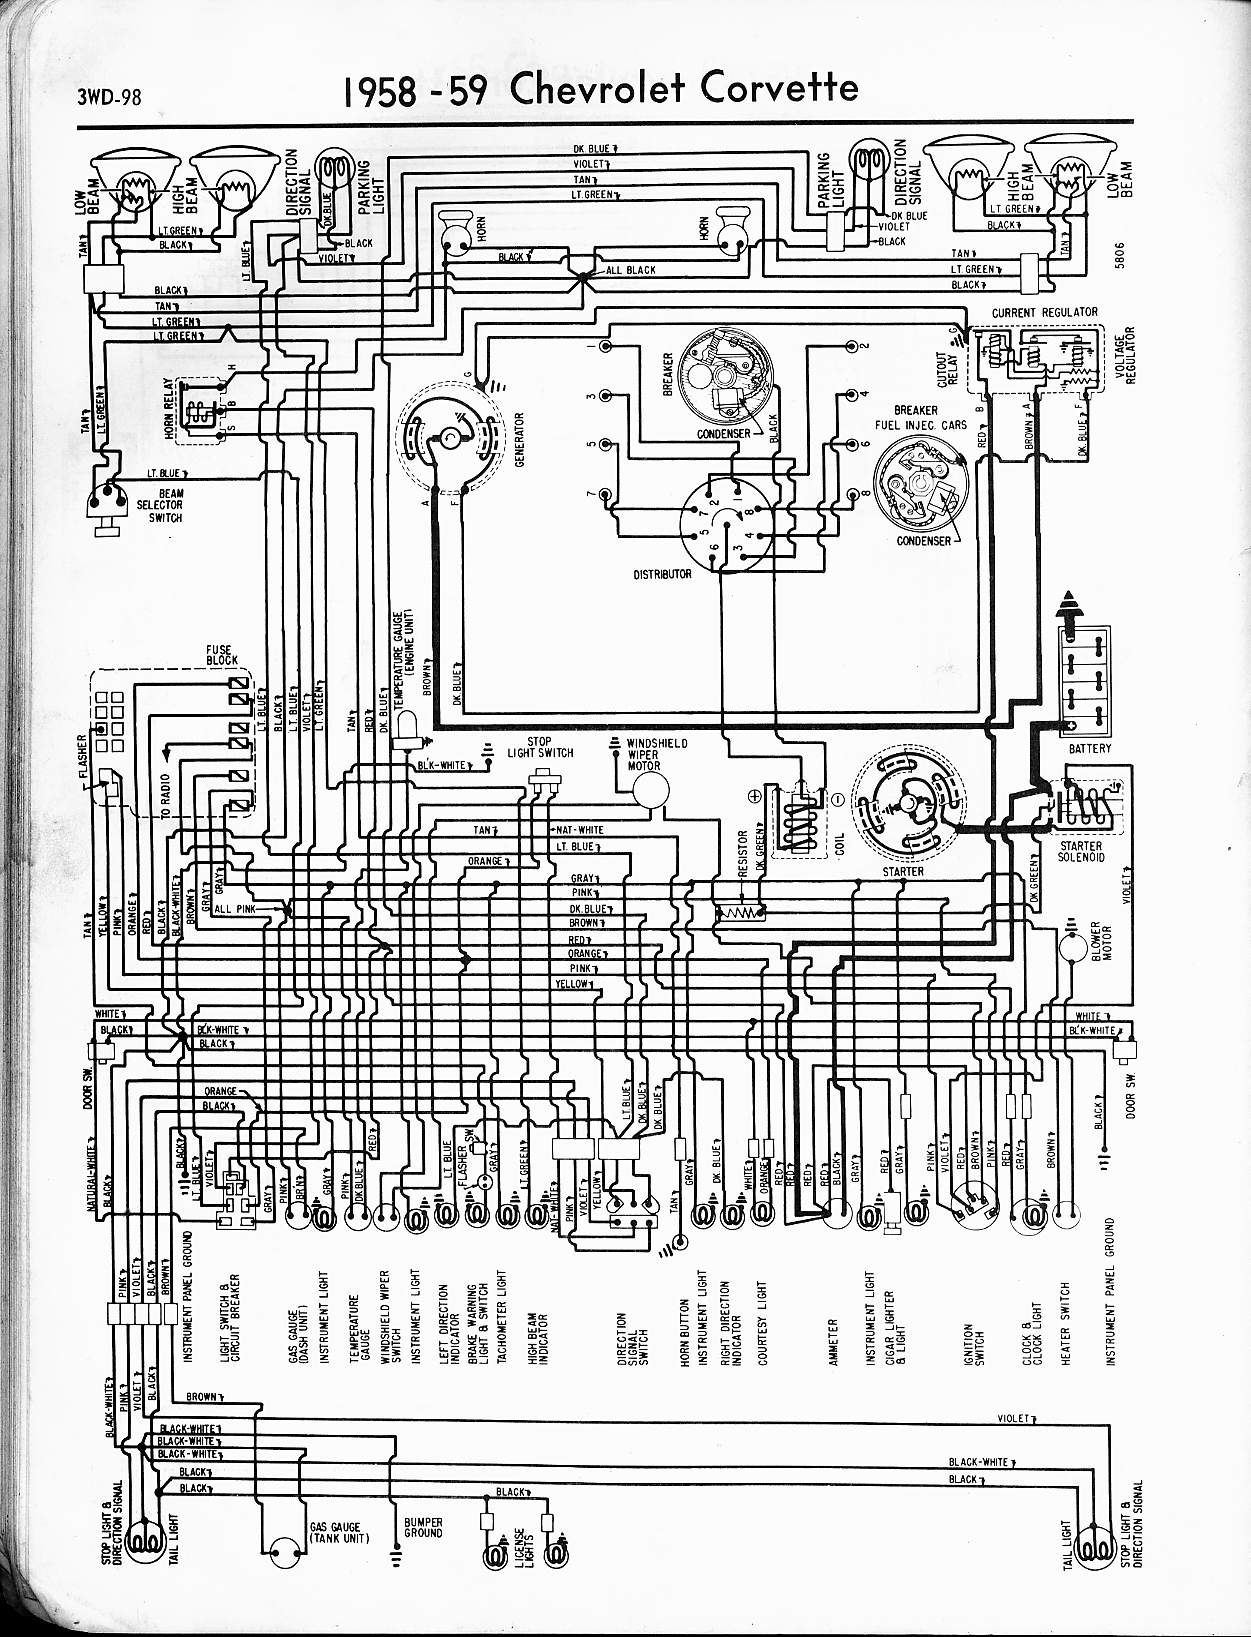 1965 Chevy Headlight Wiring Diagram Simple 2015 Impala 57 65 Diagrams Silverado